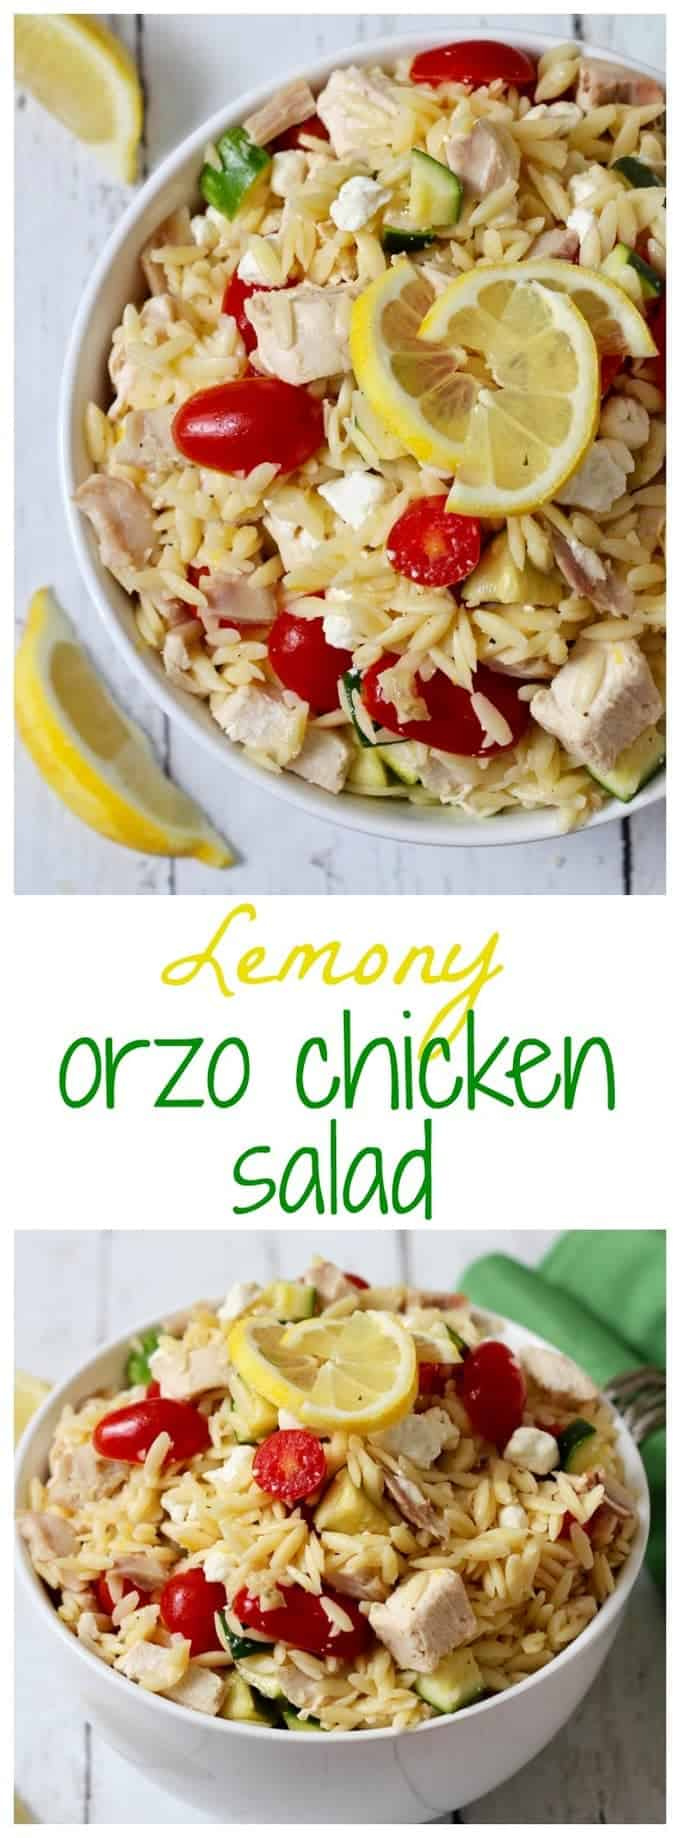 recipe: chicken florentine salad with orzo pasta [33]